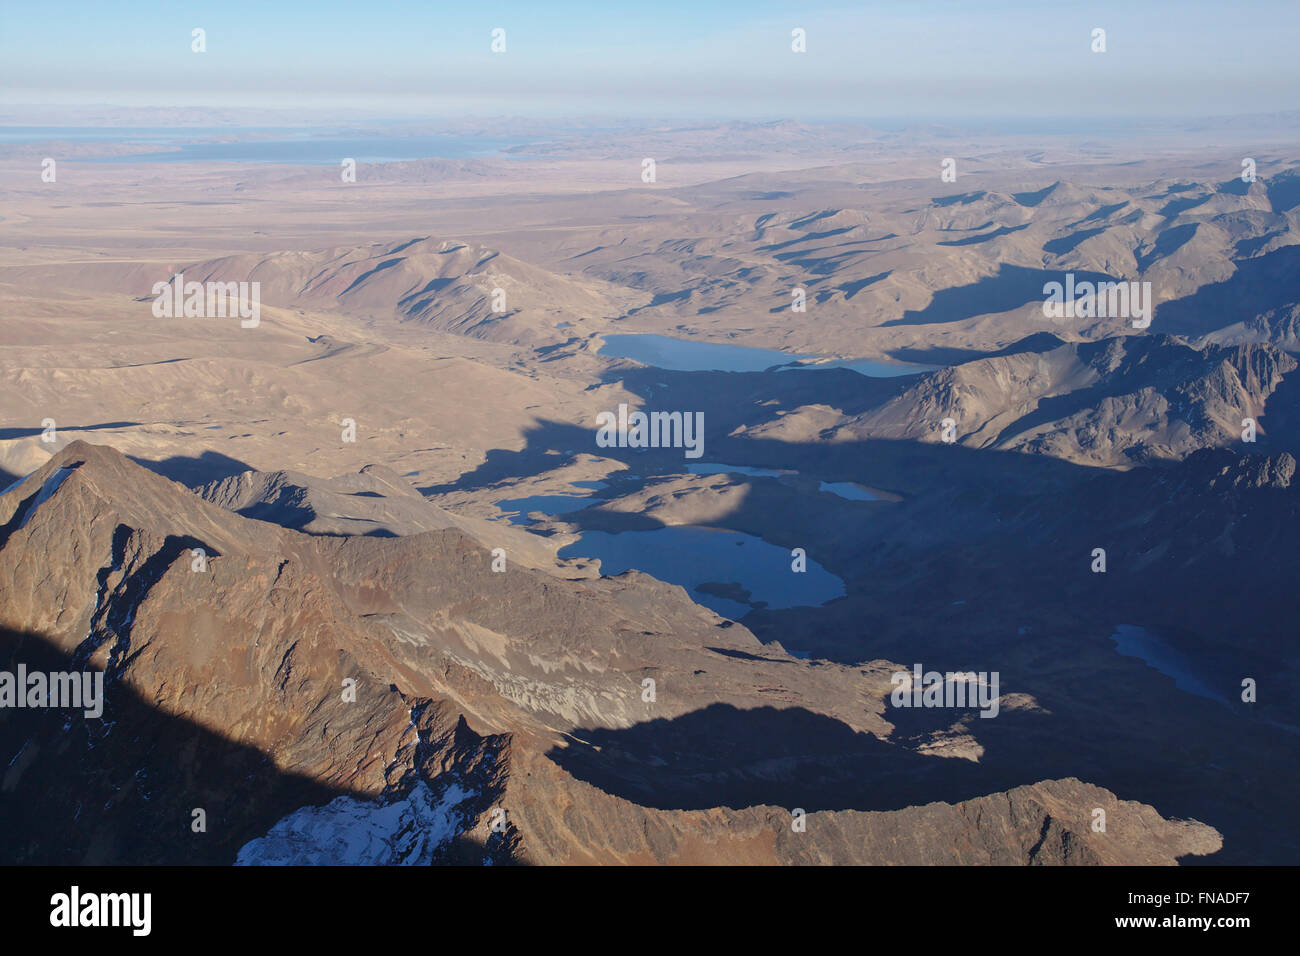 View from Huayna Potosi over the Altiplano and Lake Titicaca, Bolivia - Stock Image